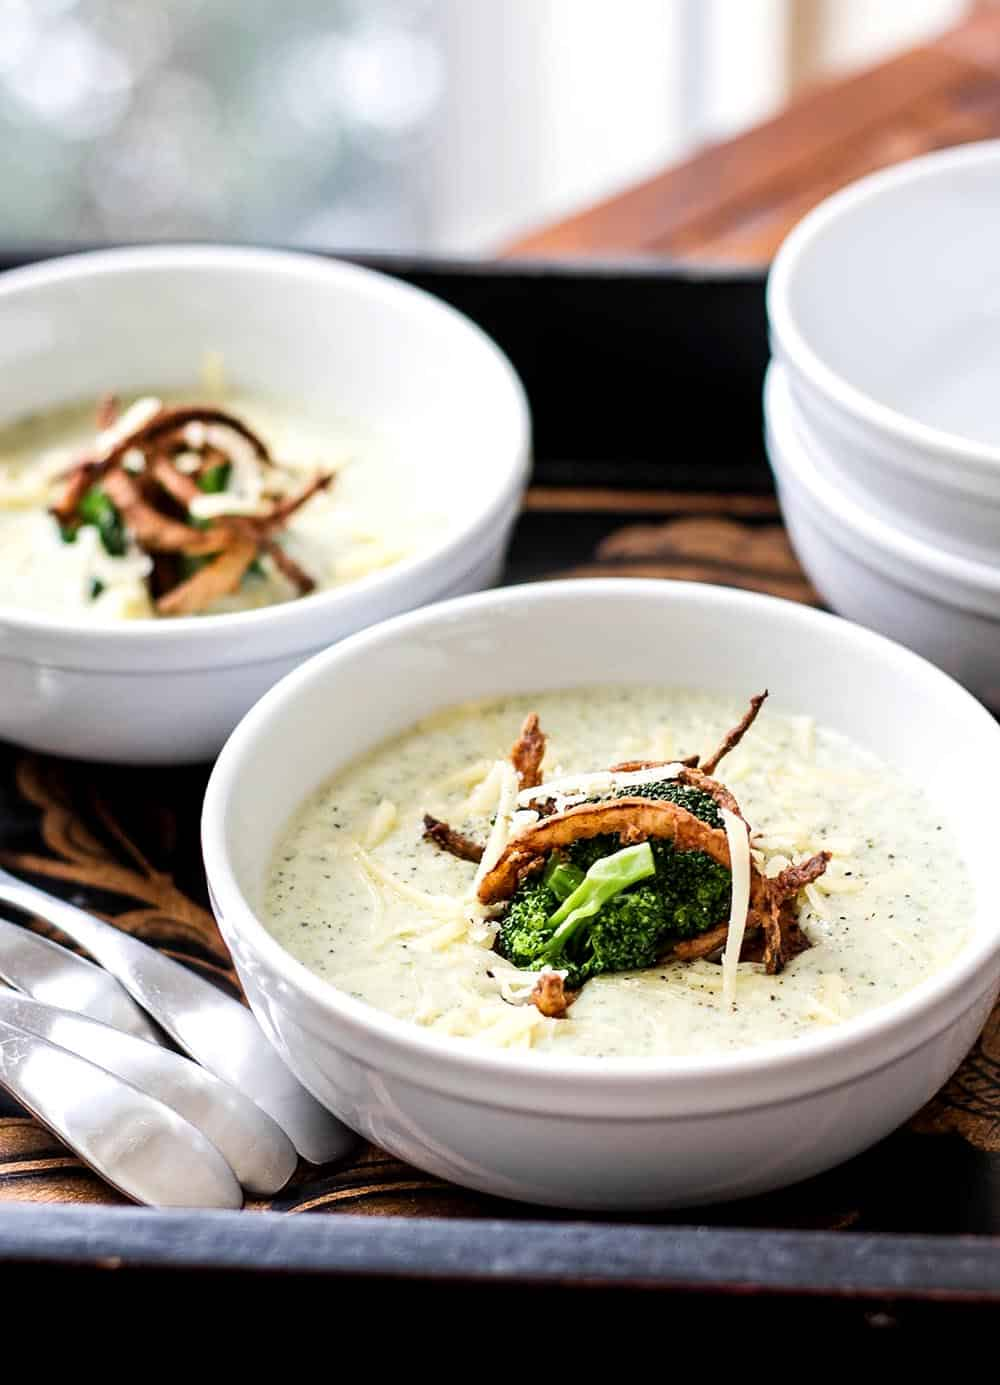 Two bowls of broccoli cheese soup on a tray